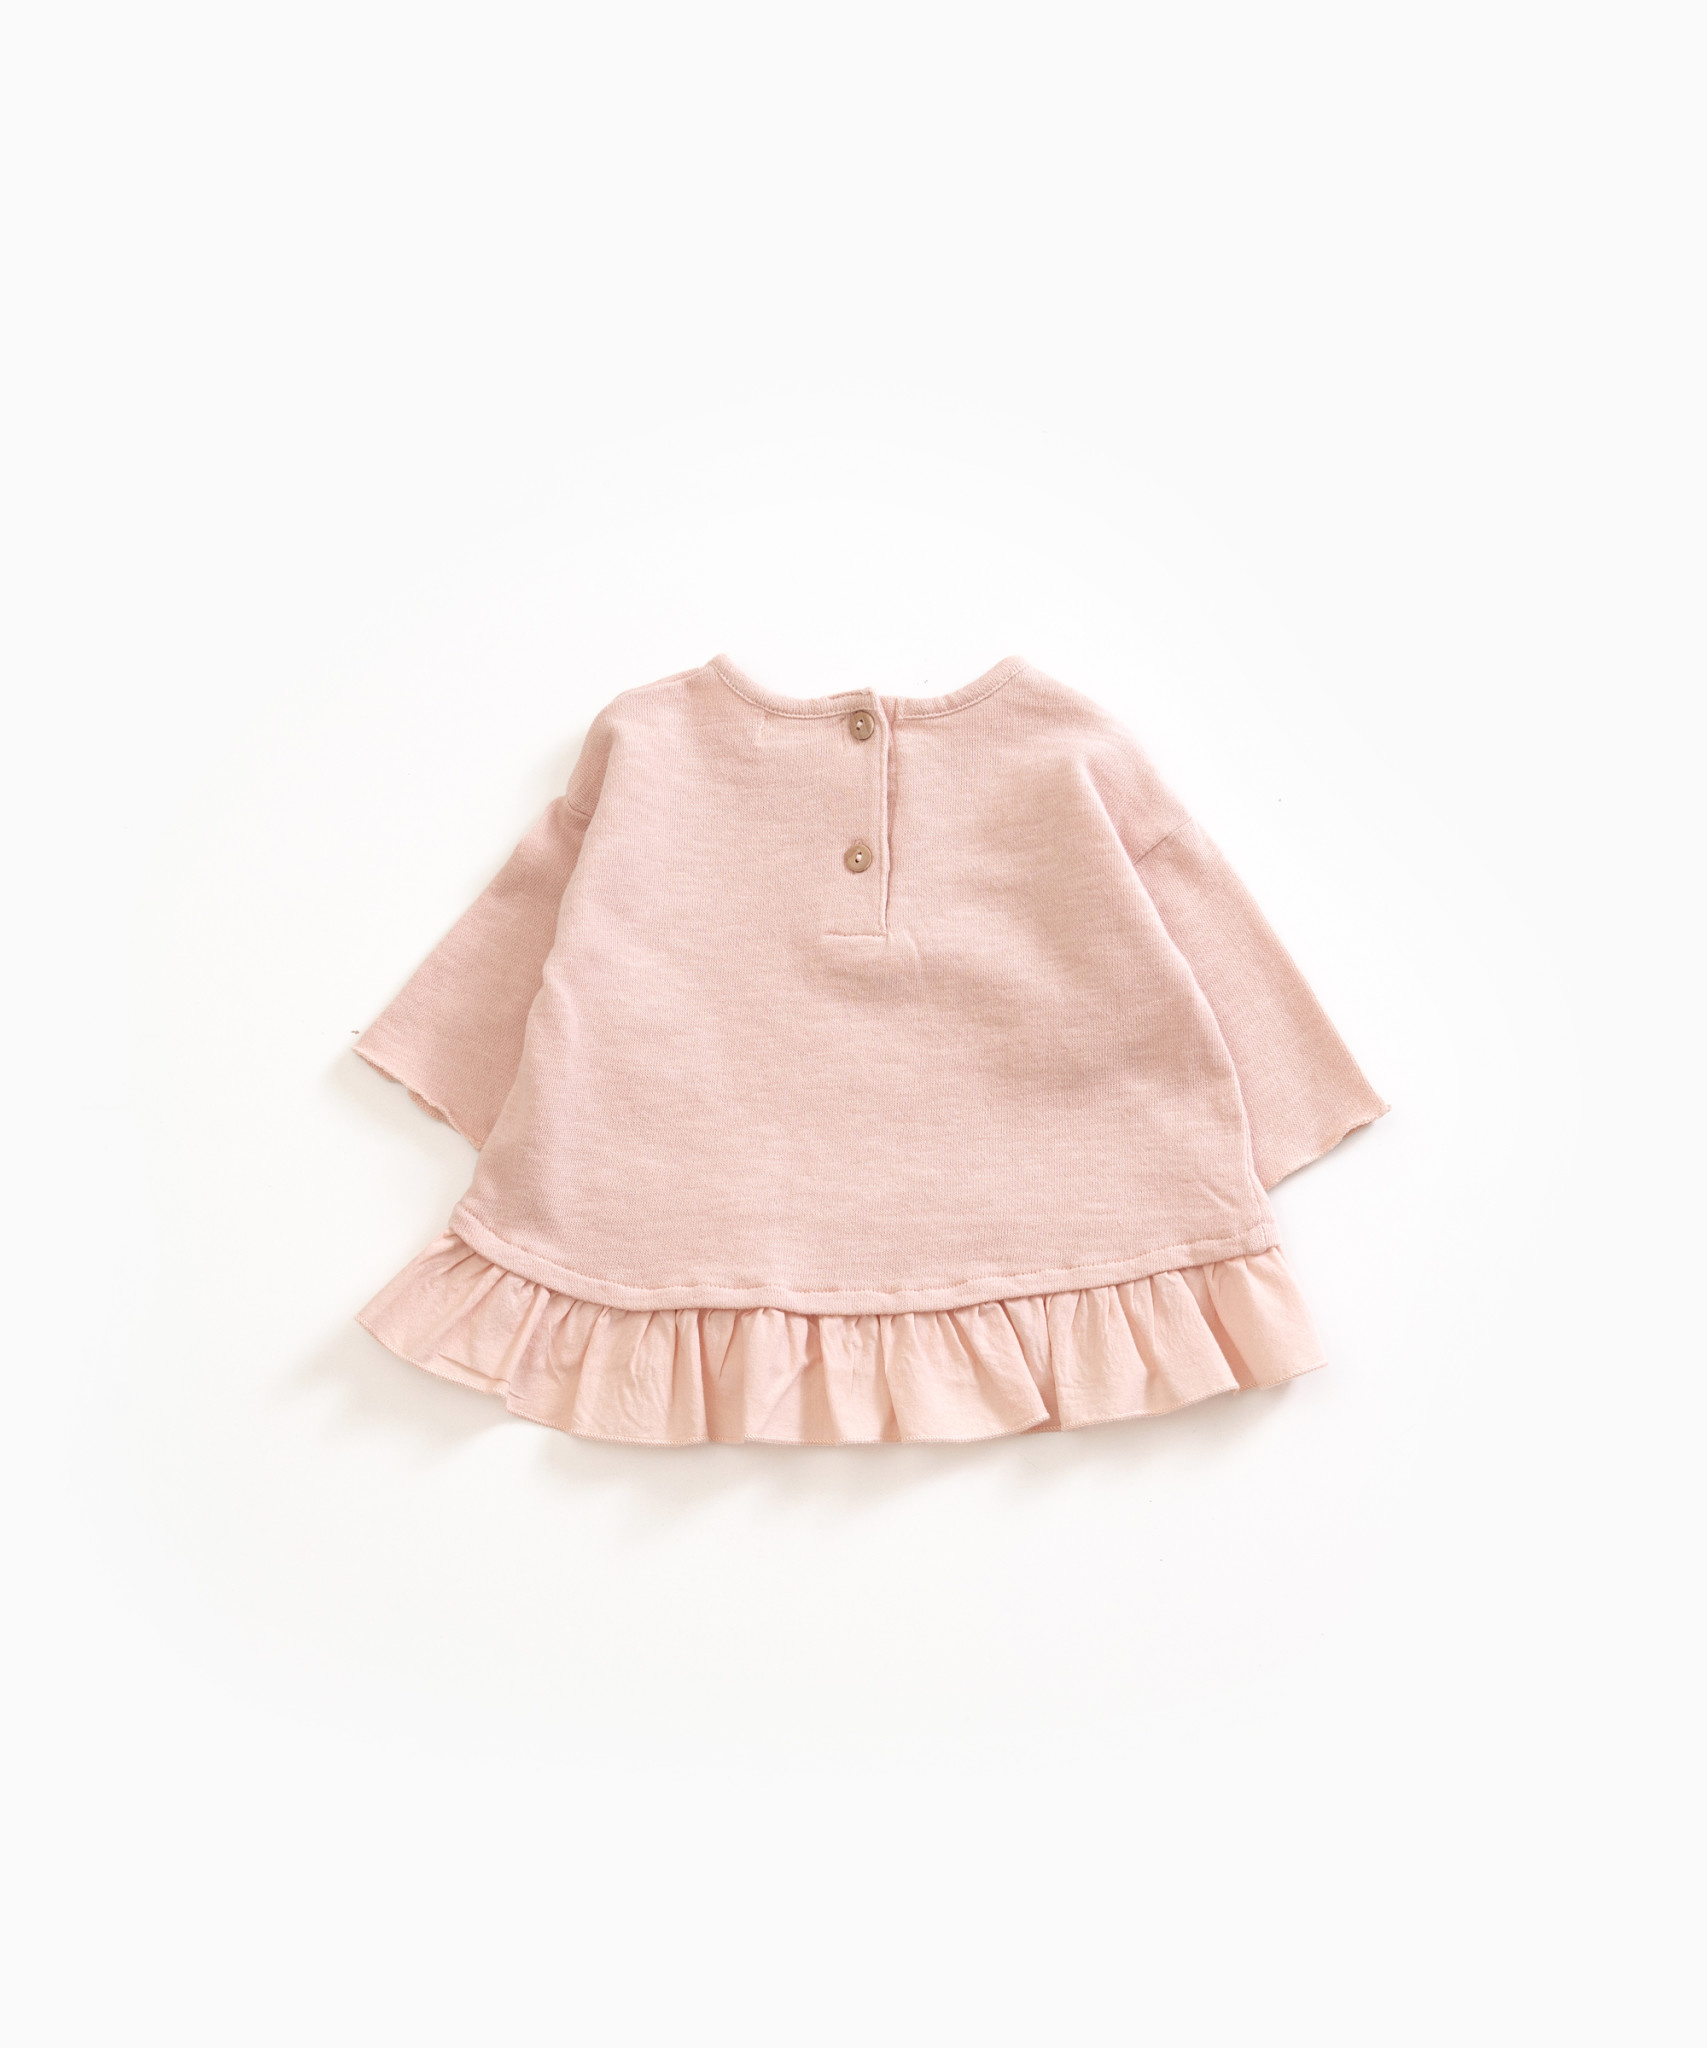 Play-up Sweater in organic cotton with frill |Rita